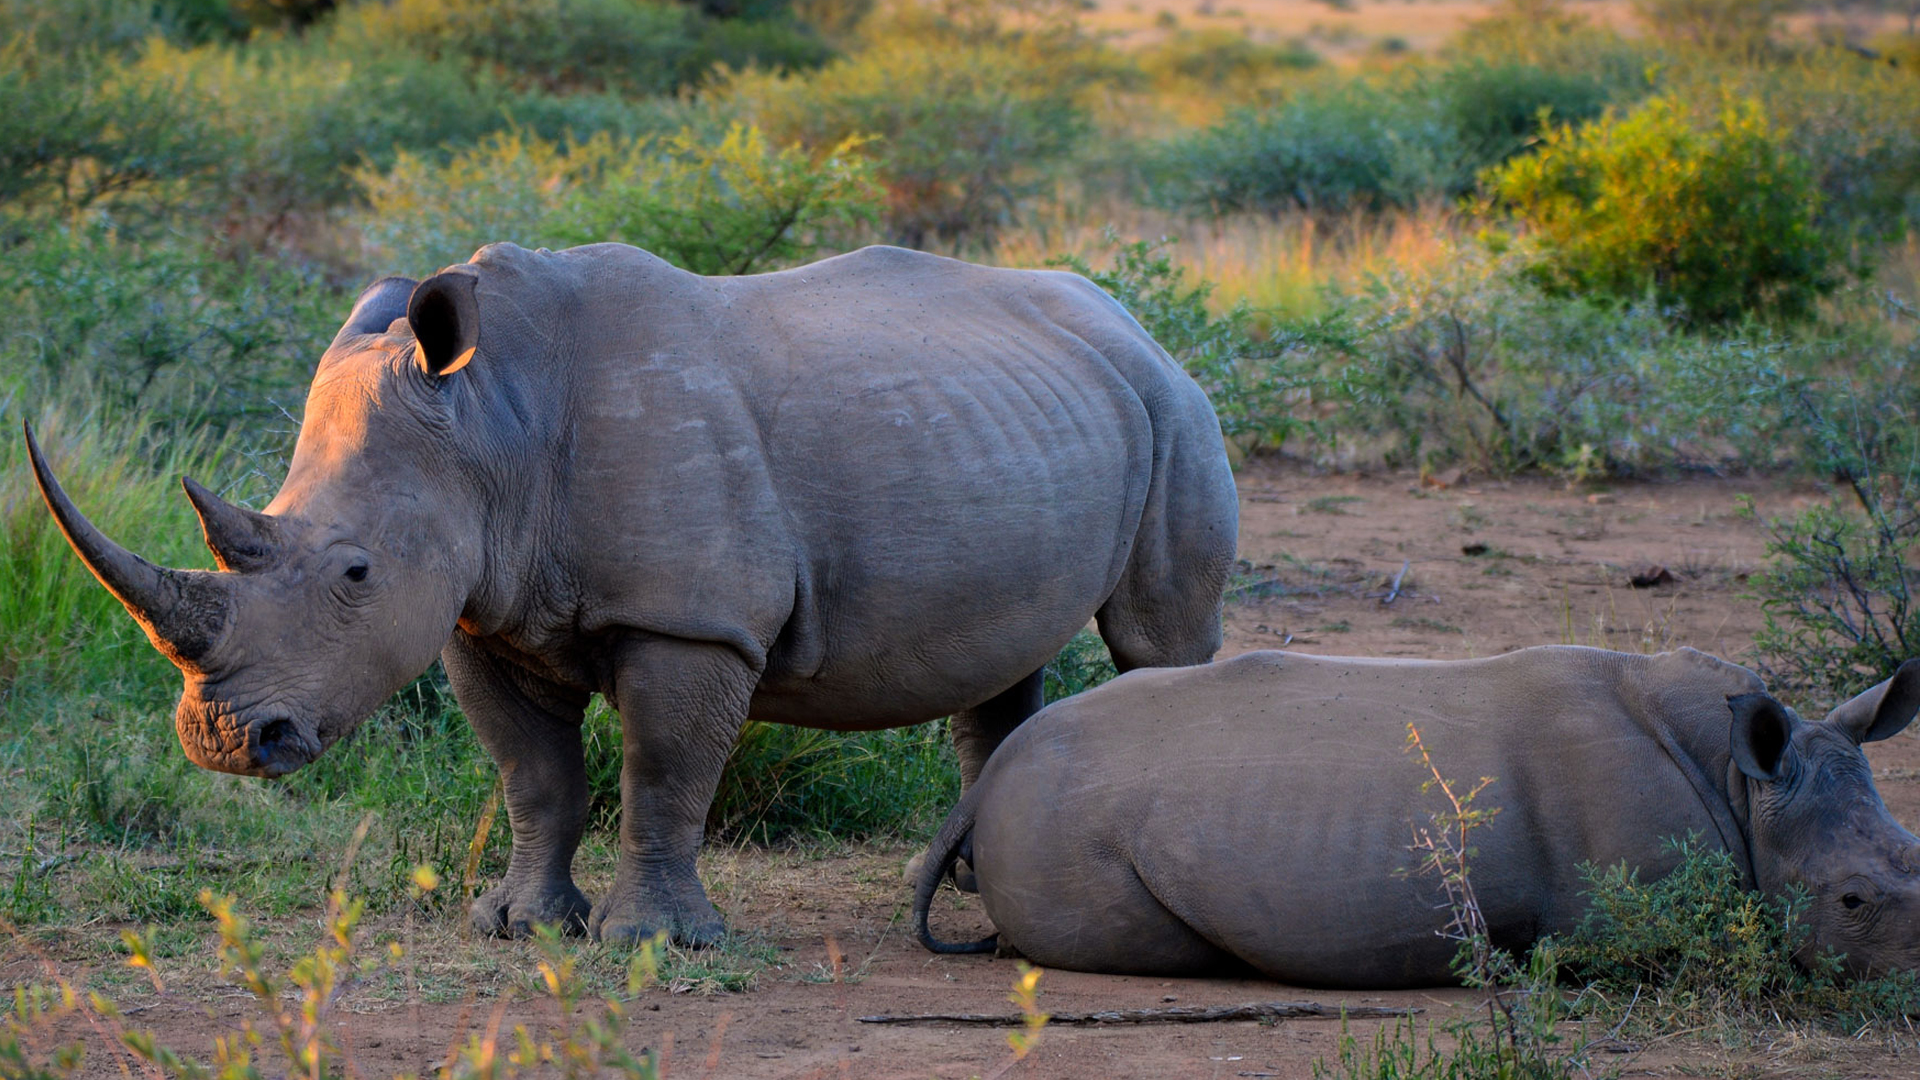 A rare opportunity to see the black rhino